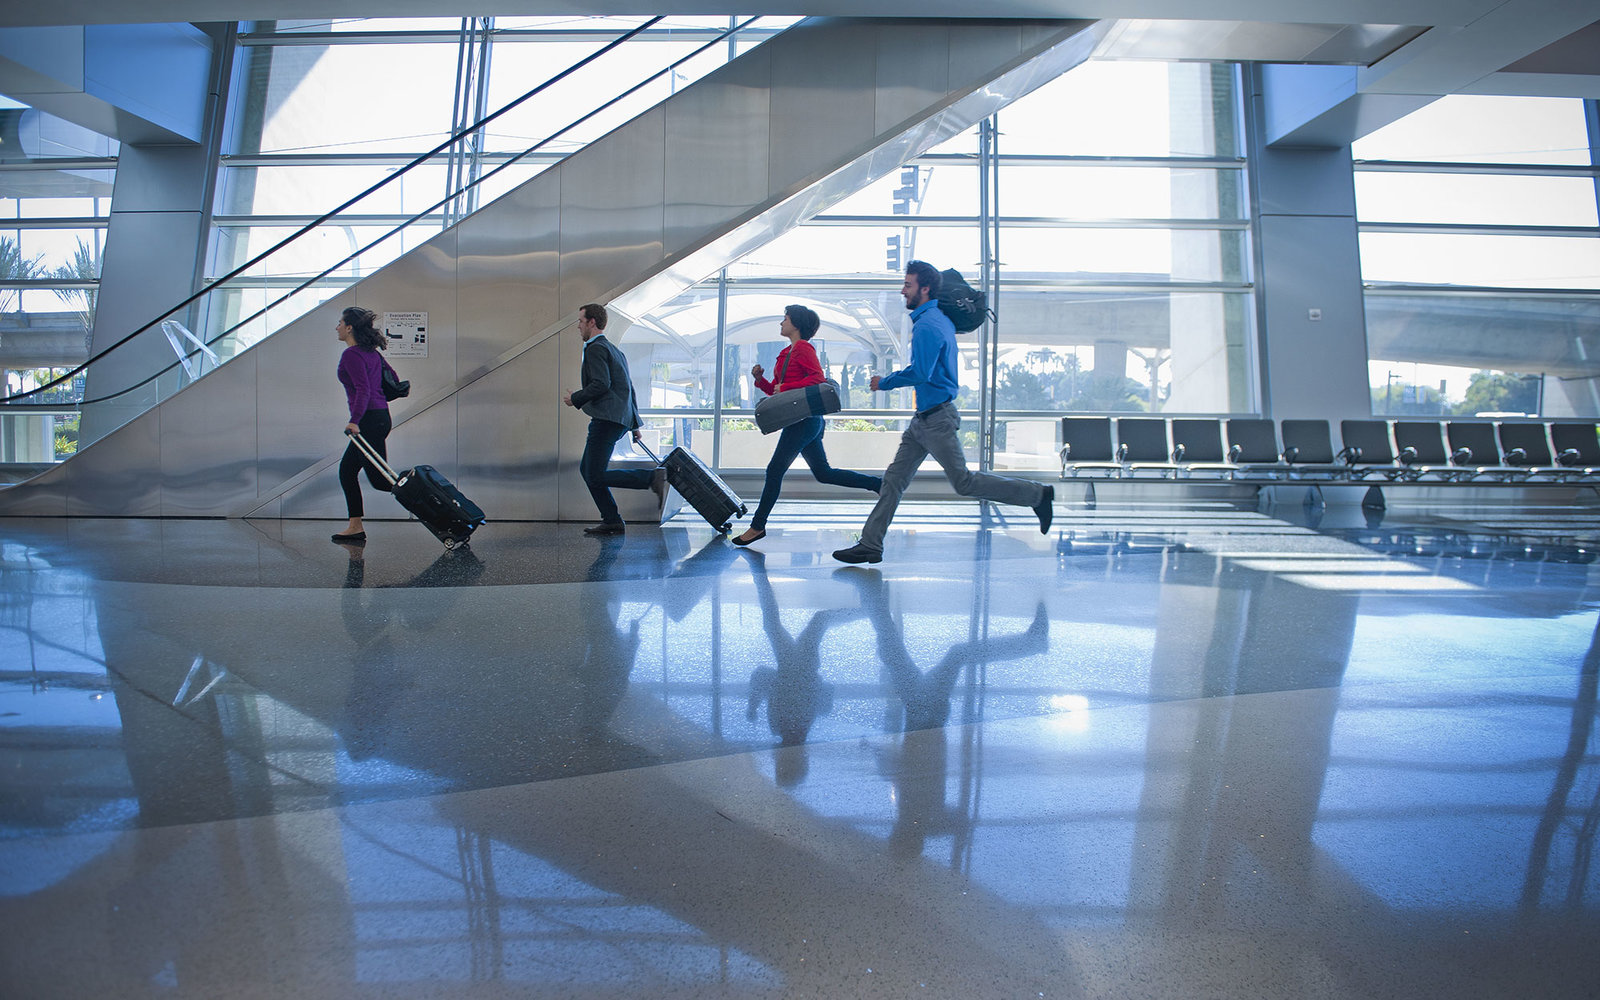 young businessmen/women rushing through airport